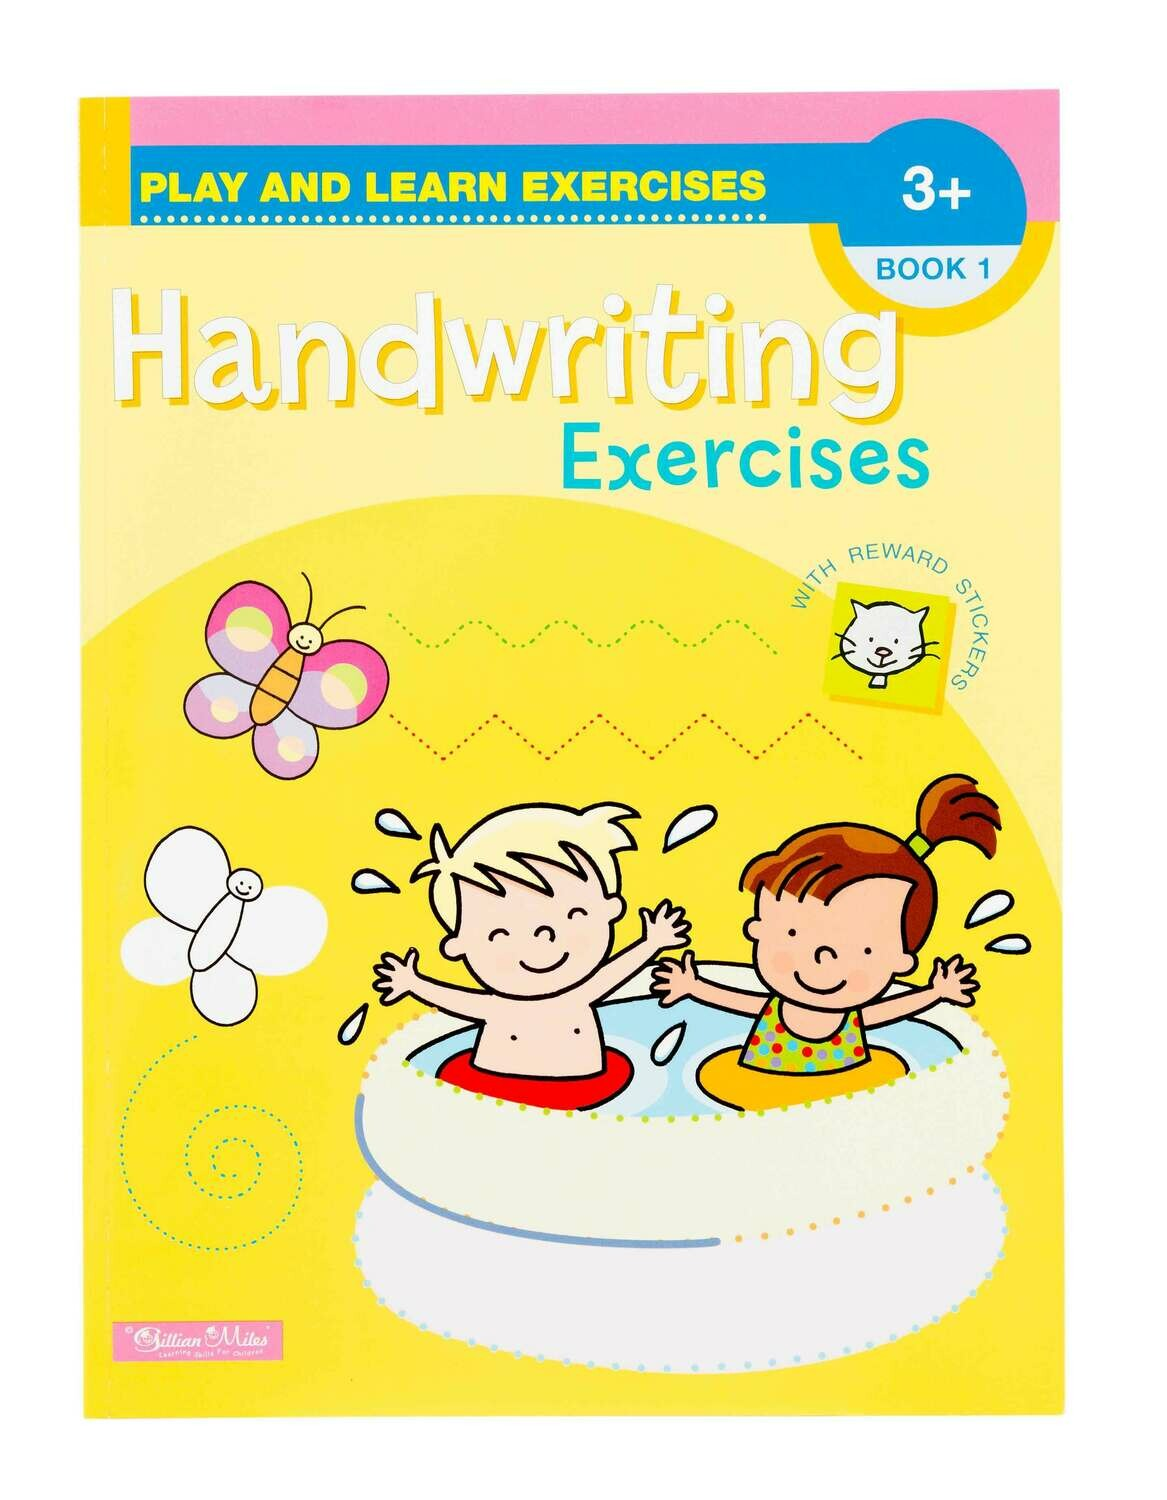 Play and Learn Exercises Handwriting Book